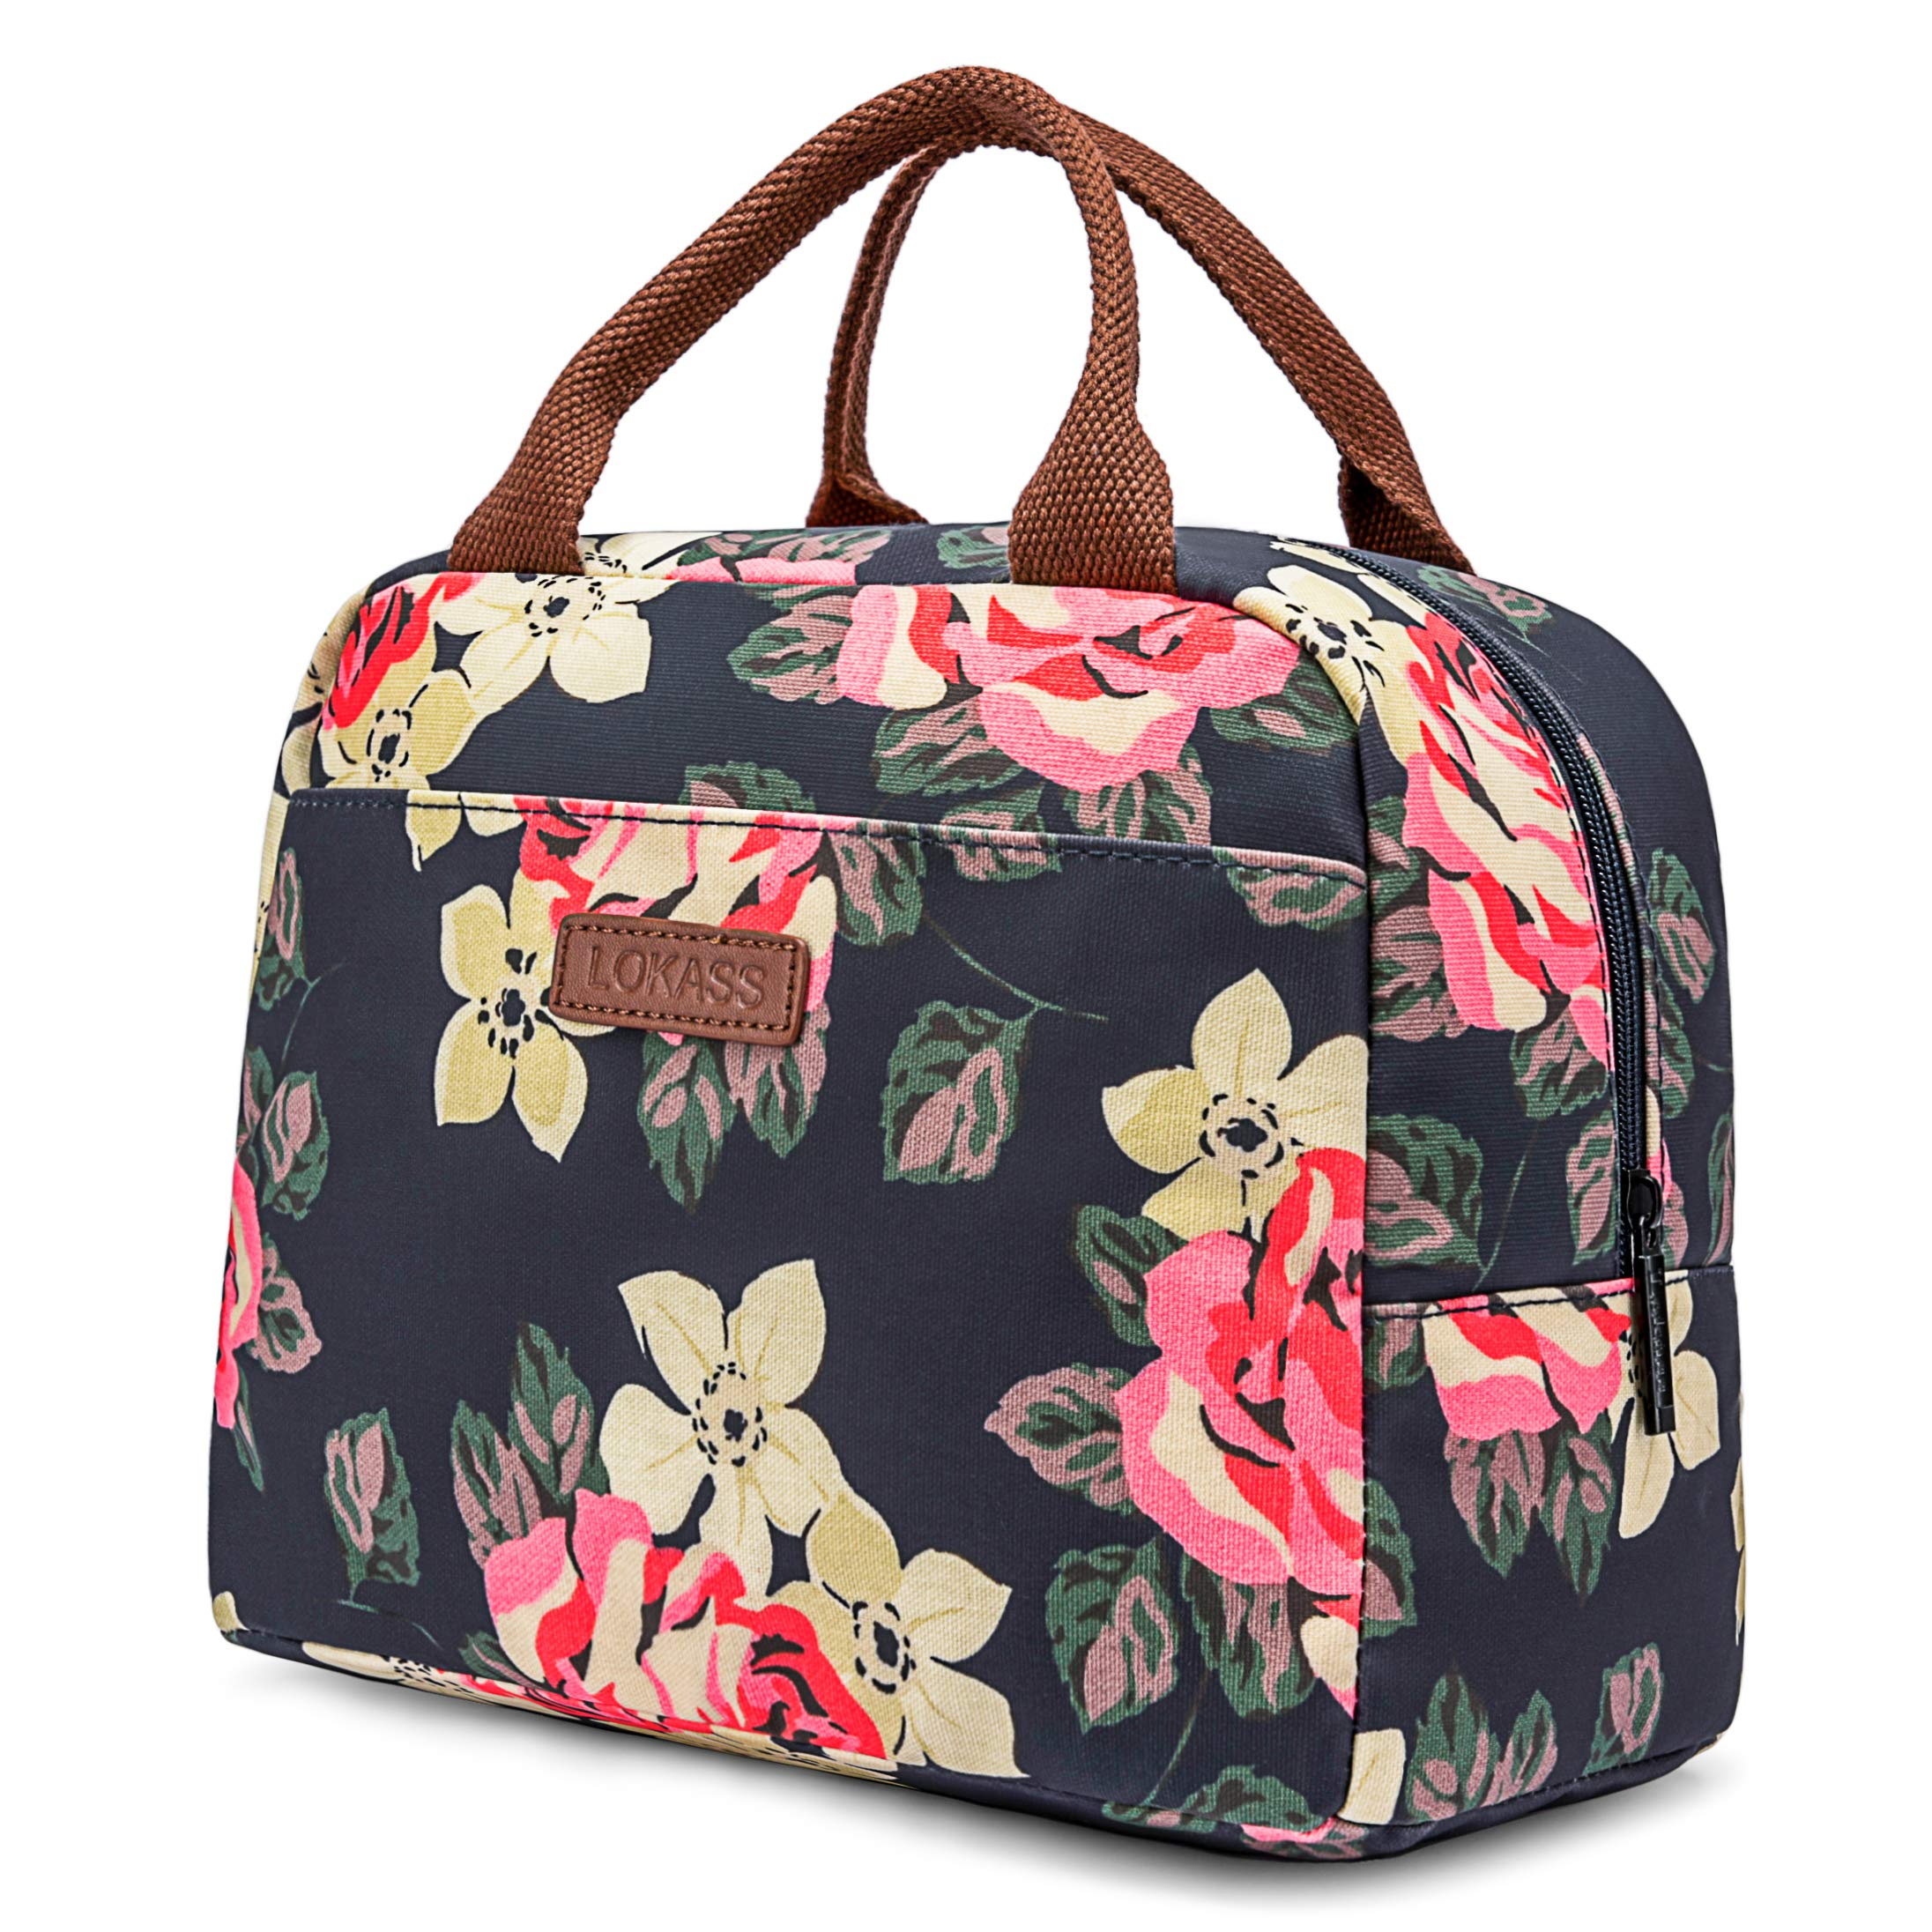 LOKASS Lunch Bag Cooler Bag Women Tote Bag Insulated Lunch Box Water-resistant Thermal Lunch Bag Soft Liner Lunch Bags for women/Picnic/Boating/Beach/Fishing/Work (Peony) by LOKASS